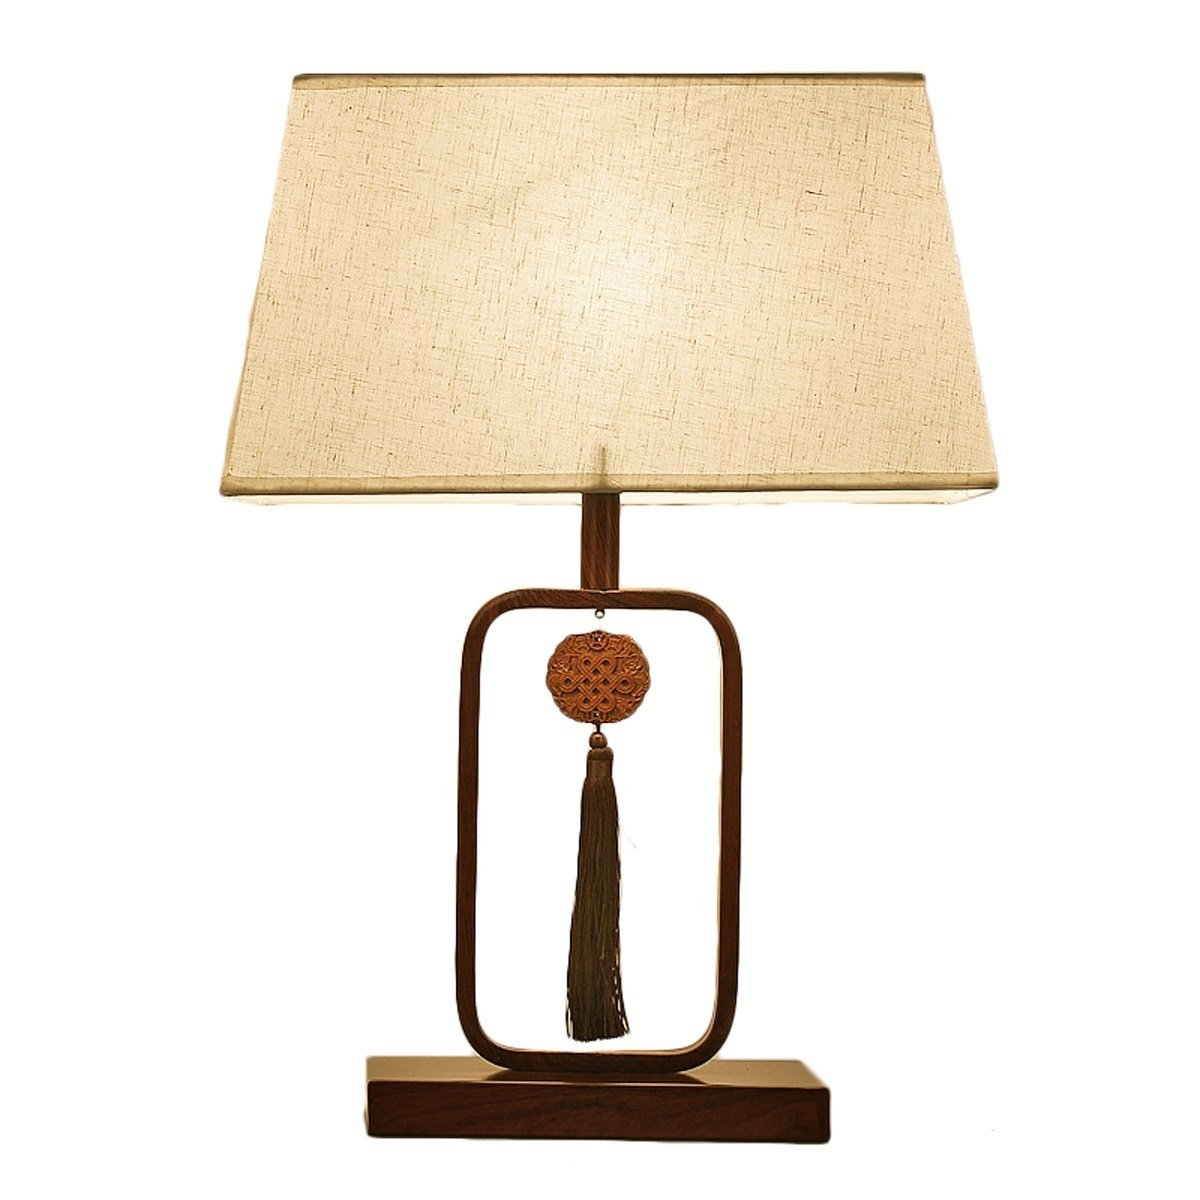 Modern Table Lamp for Bedroom Luxury Classical Art Table Lamp E27 Living Room Bedroom Bedside